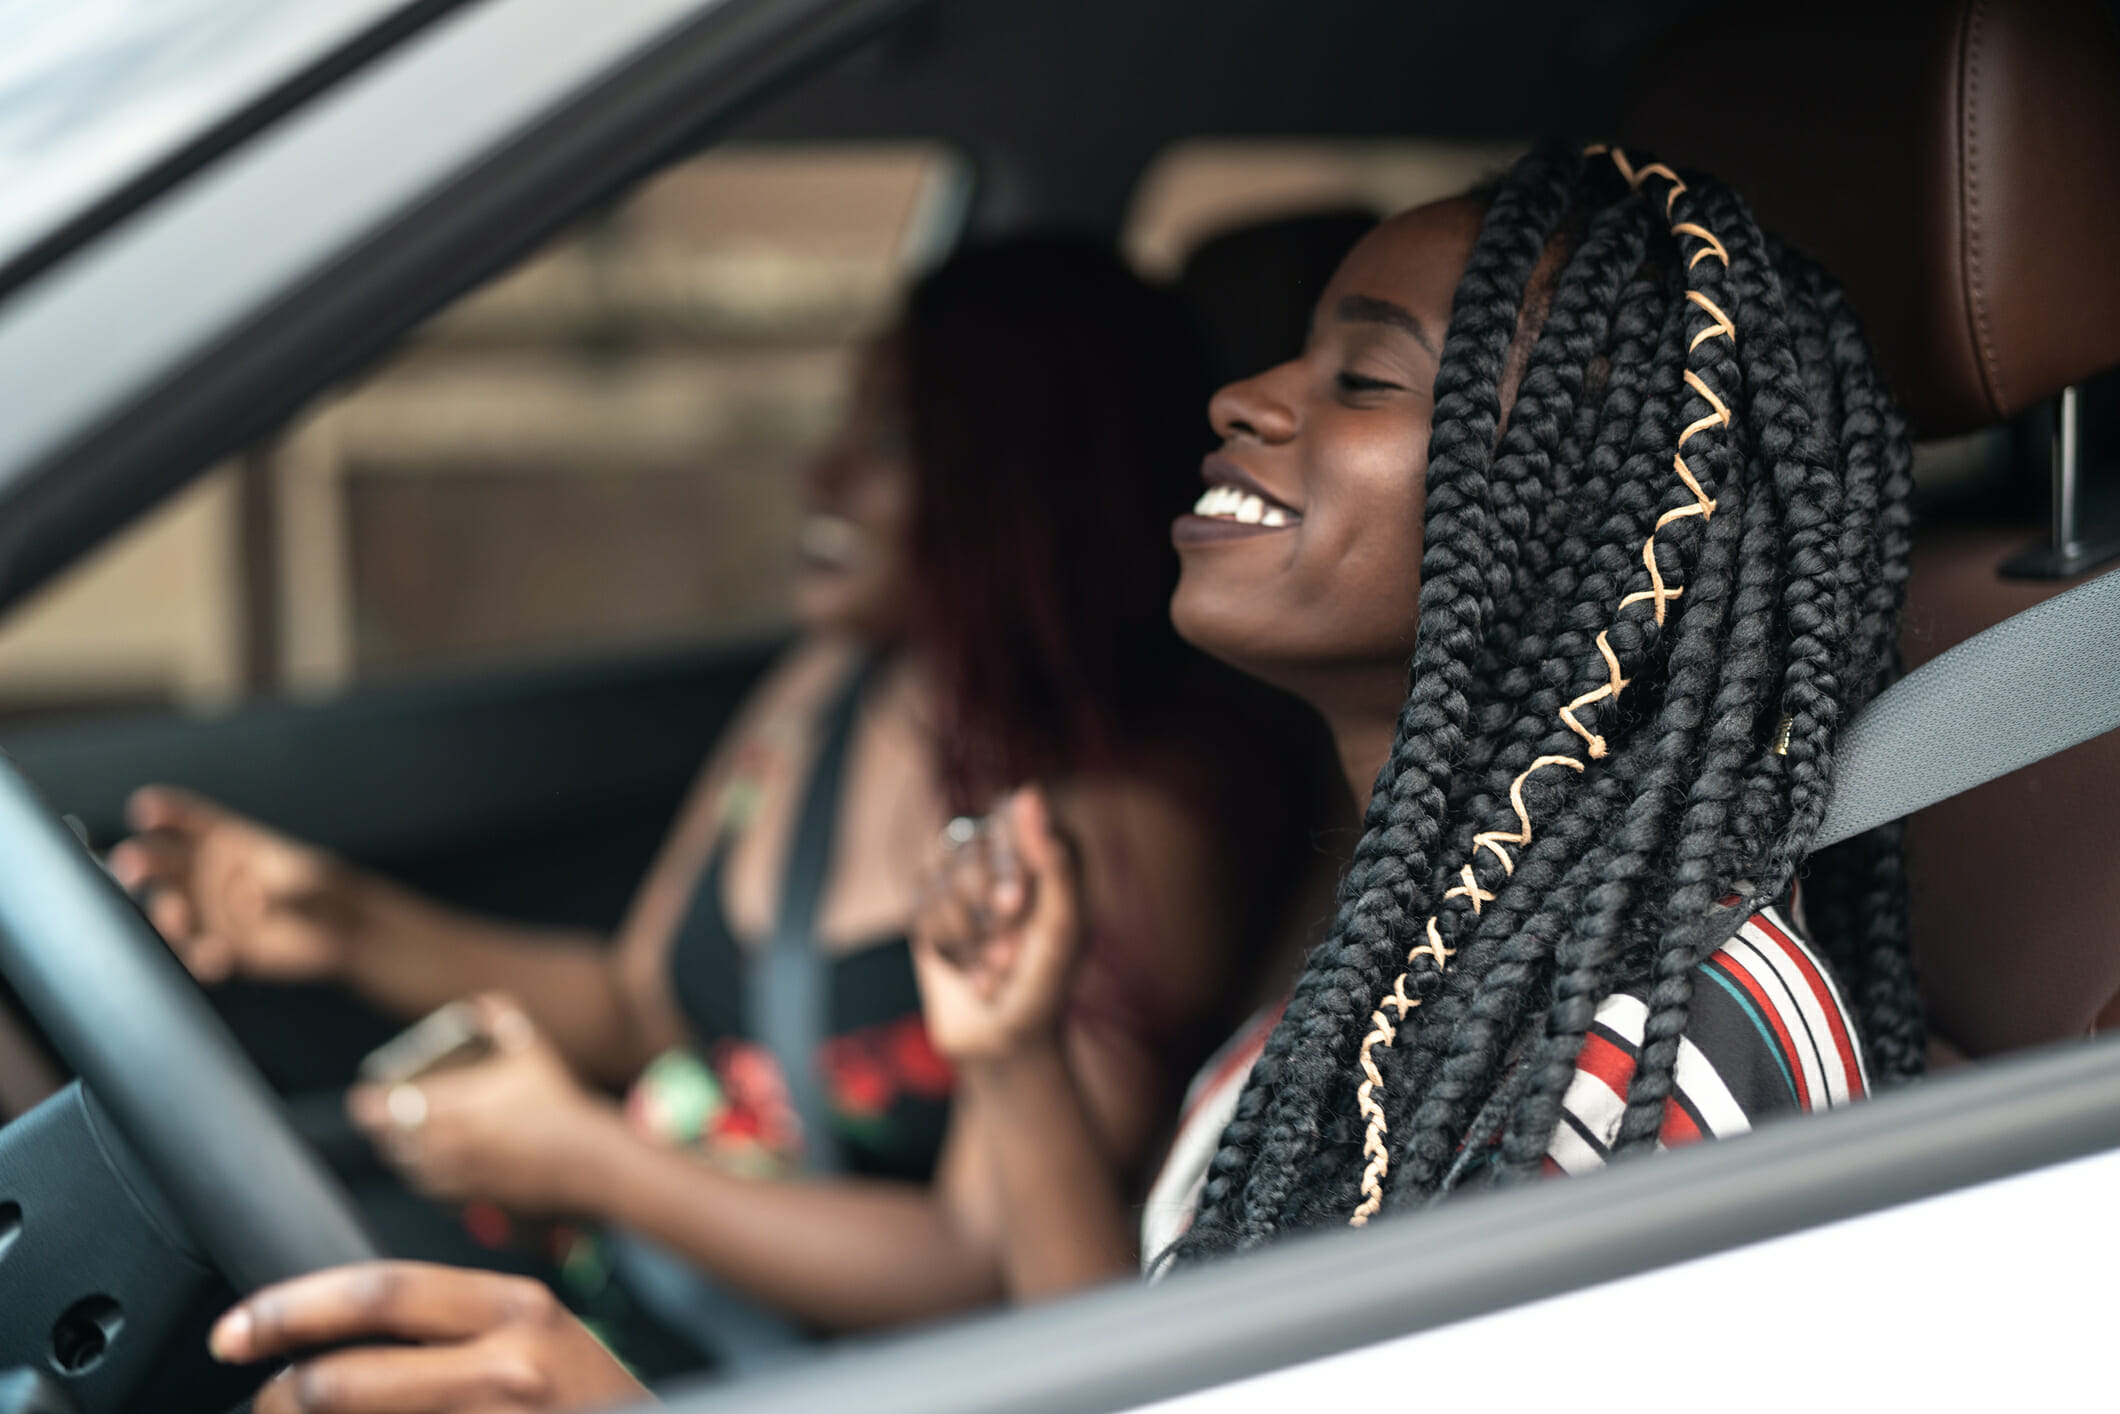 Woman with braids takes her friend for a ride in her new car bought with a credit card